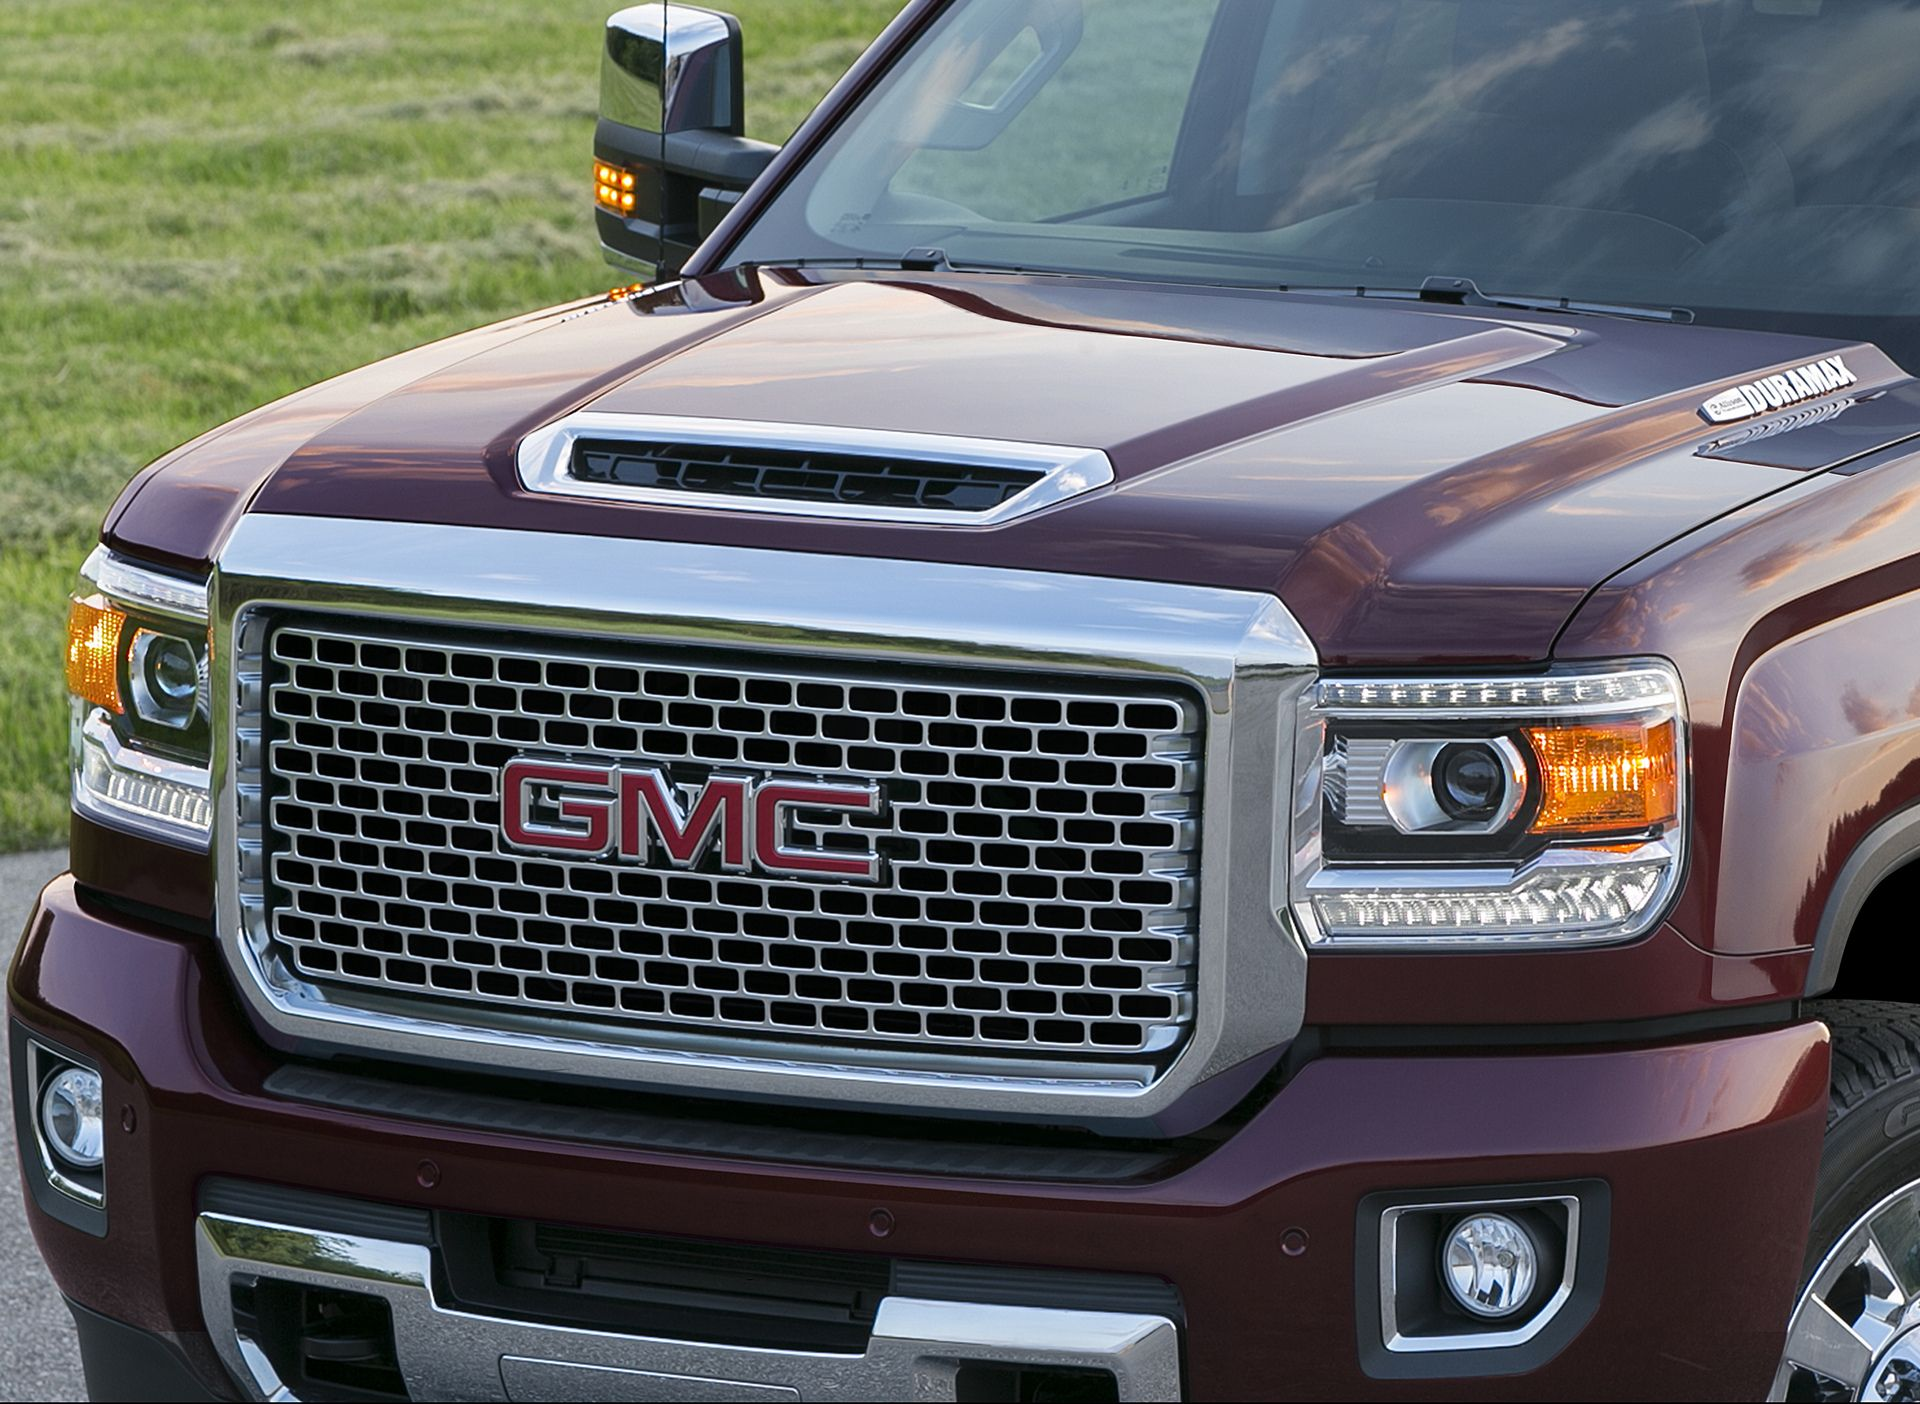 2017 gmc sierra denali bold hood design hints at what lies beneath gmc today released the first photos of the 2017 sierra denali featuring a